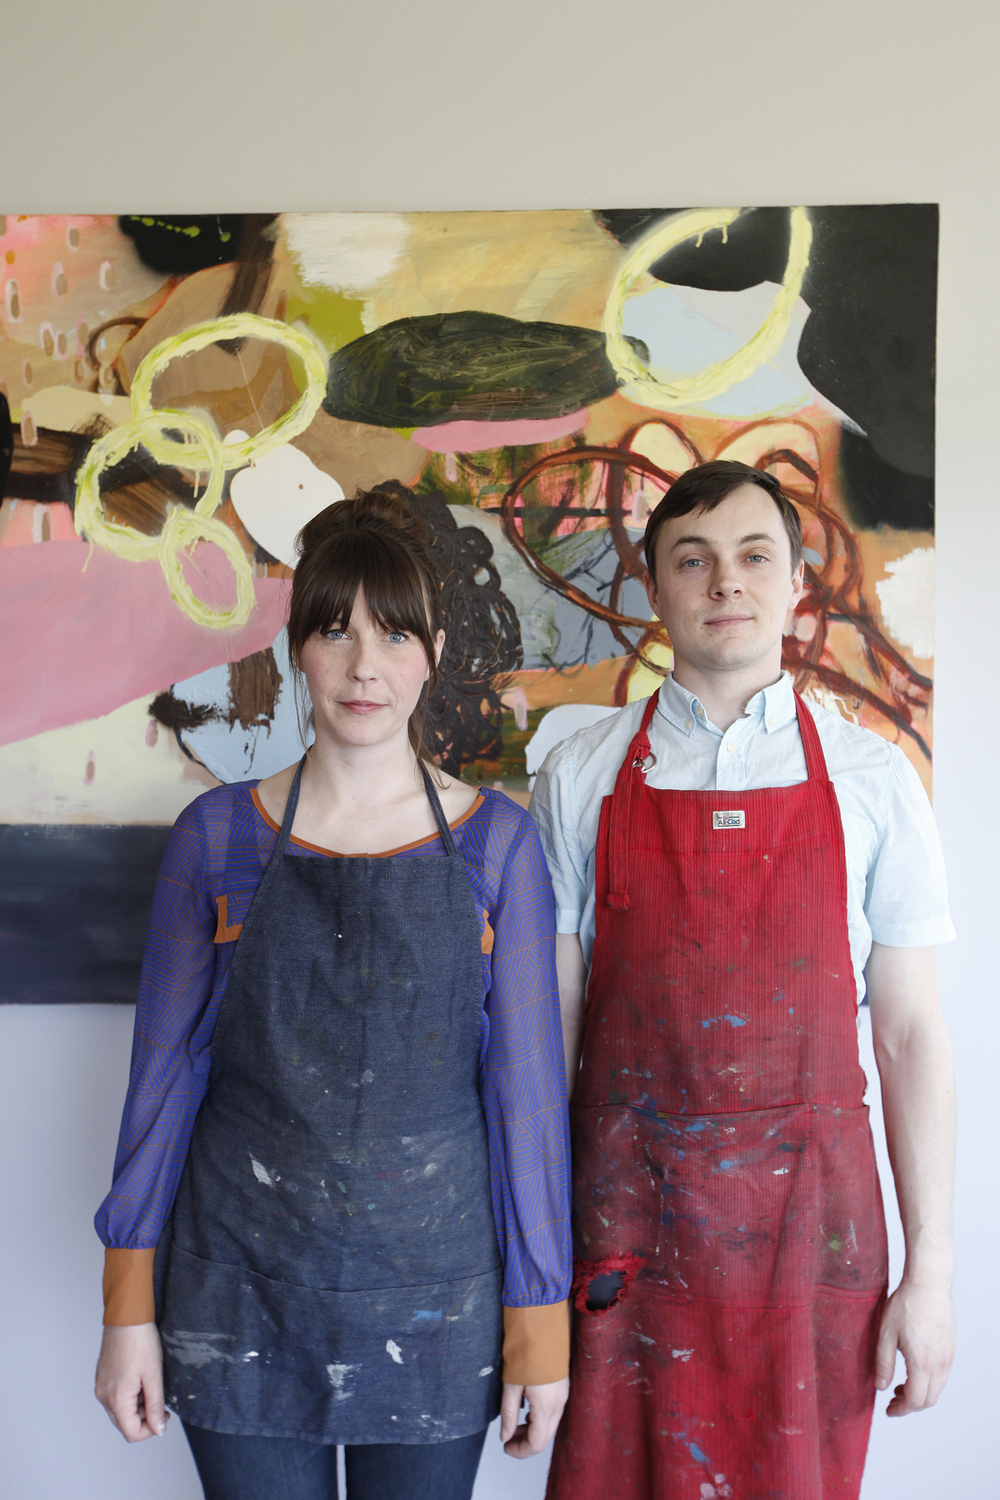 Chrissy Poitras and Kyle Topping, Spark Box Studio